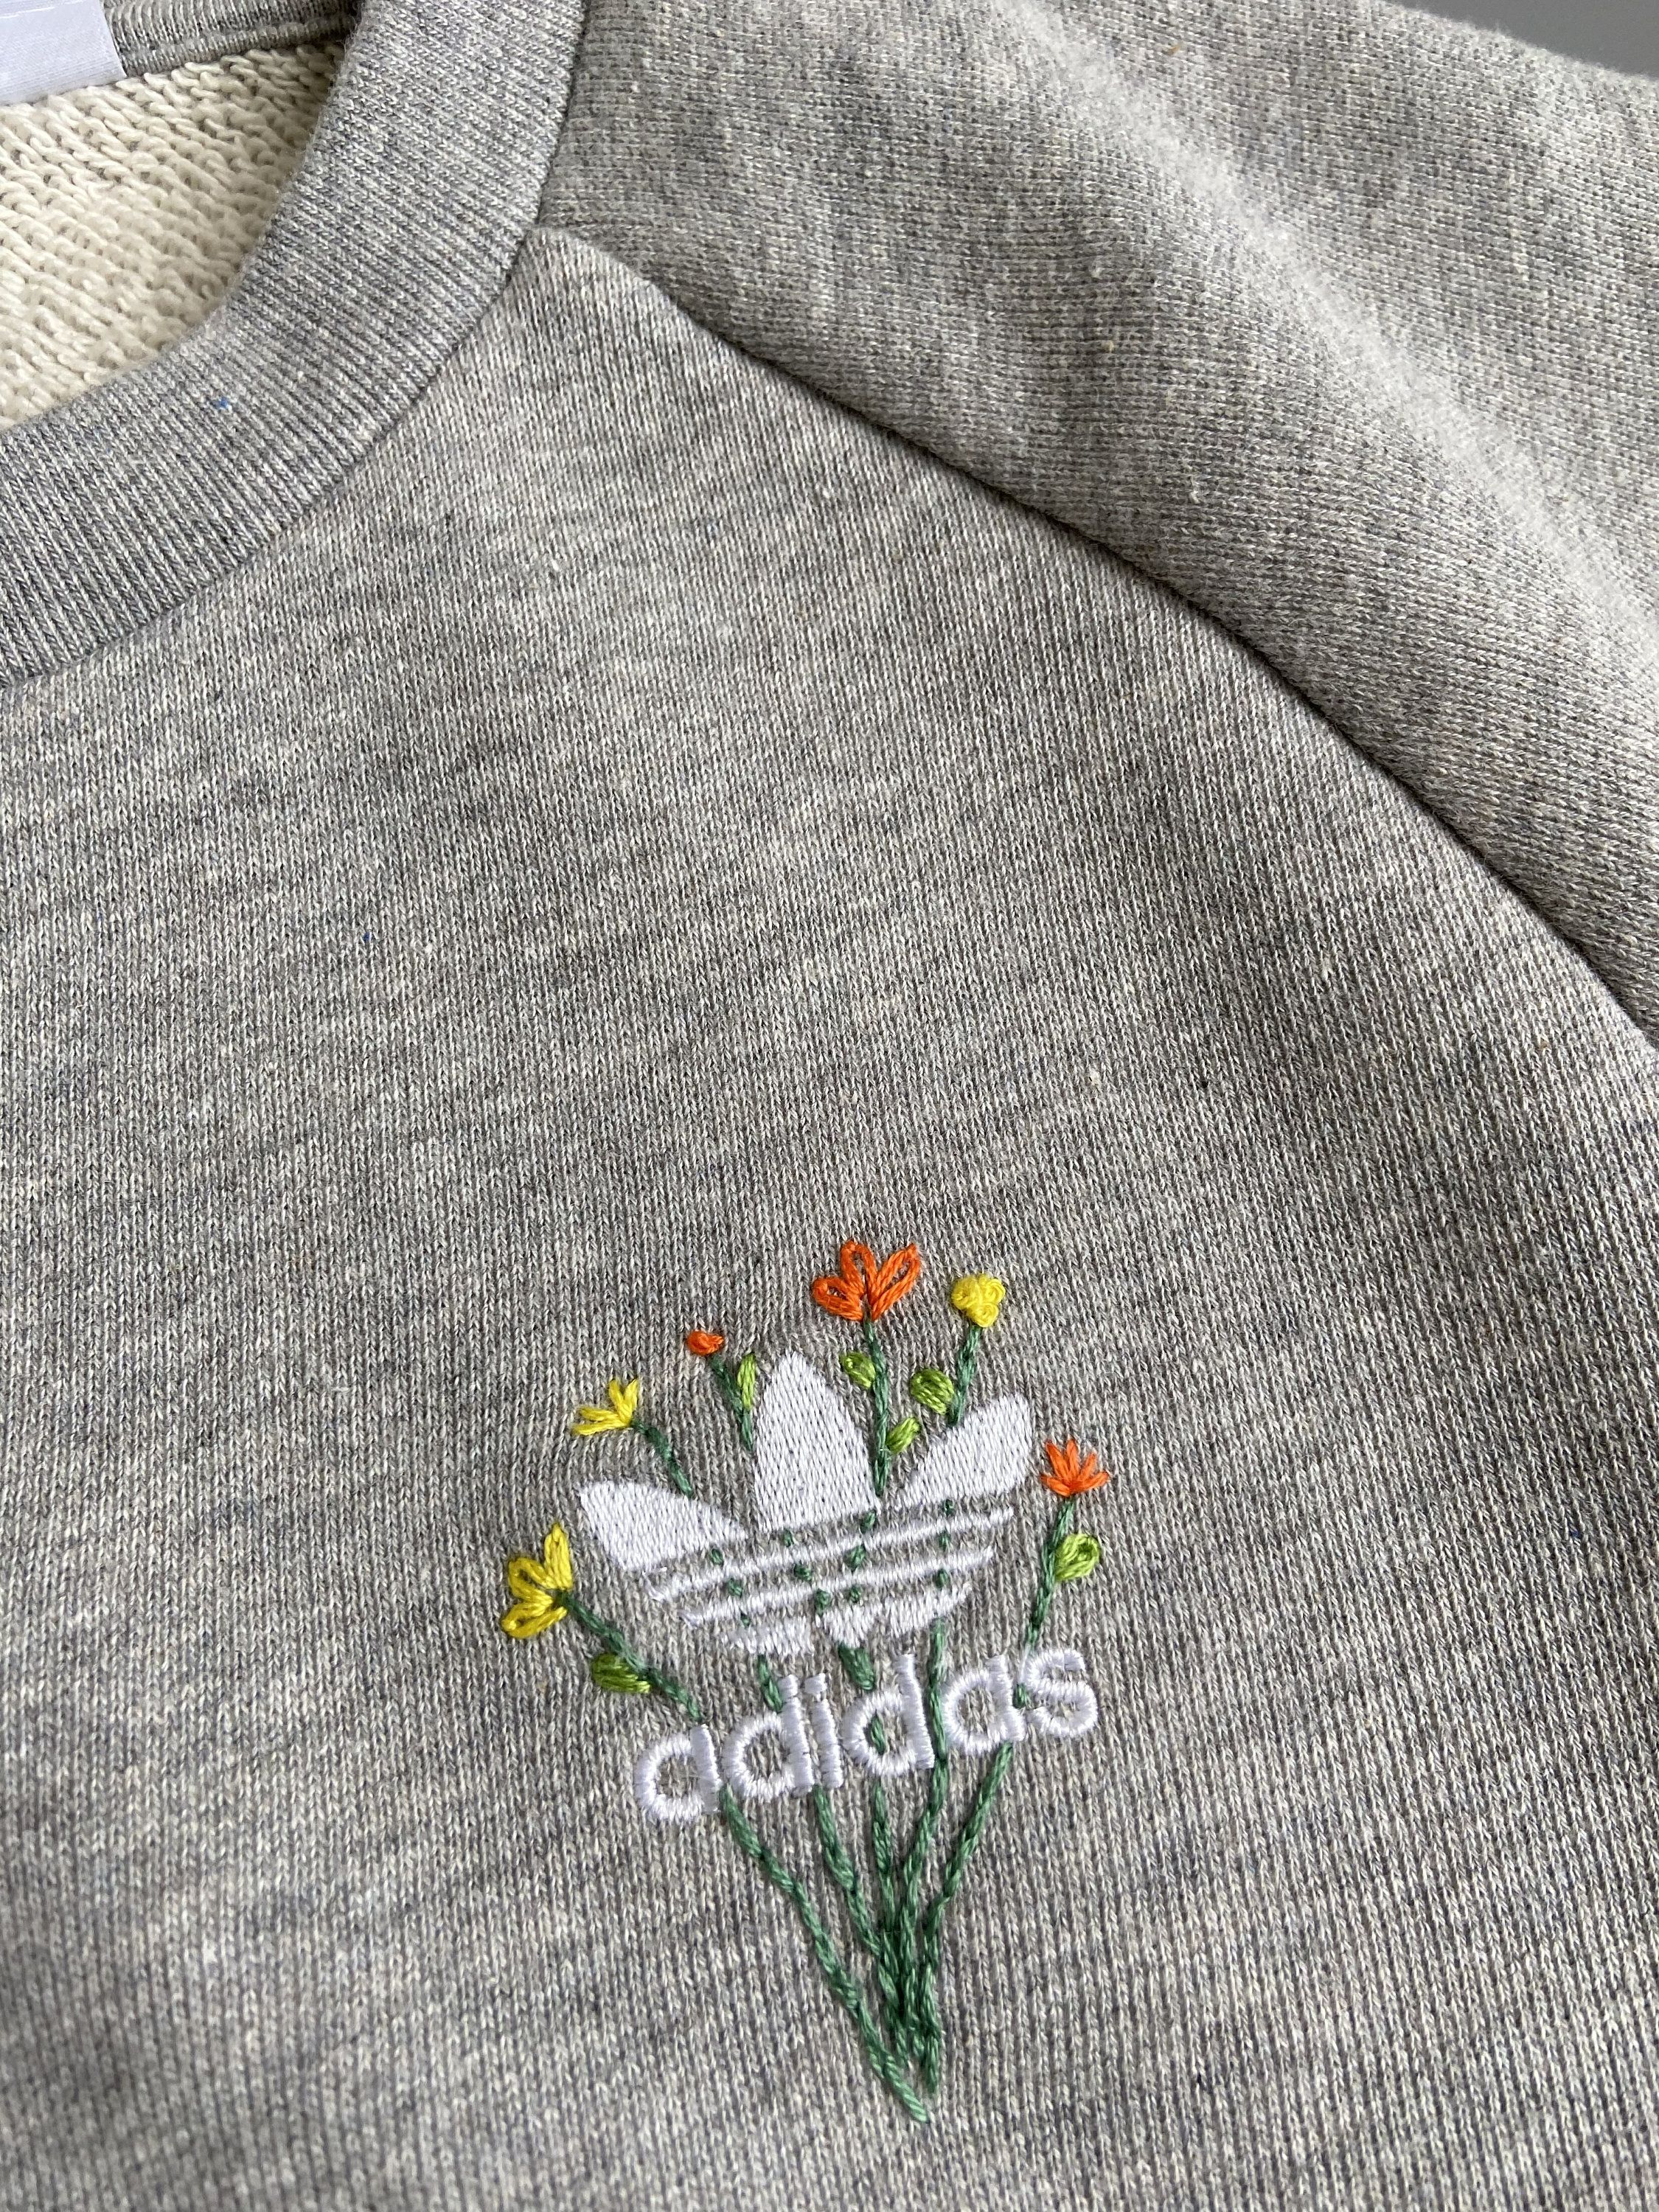 Excited To Share The Latest Addition To My Etsy Shop Hand Embroidered Adidas Sweatshirt H Embroidered Sweatshirt Diy Sewing Embroidery Designs Stitch Clothes [ 3000 x 2250 Pixel ]